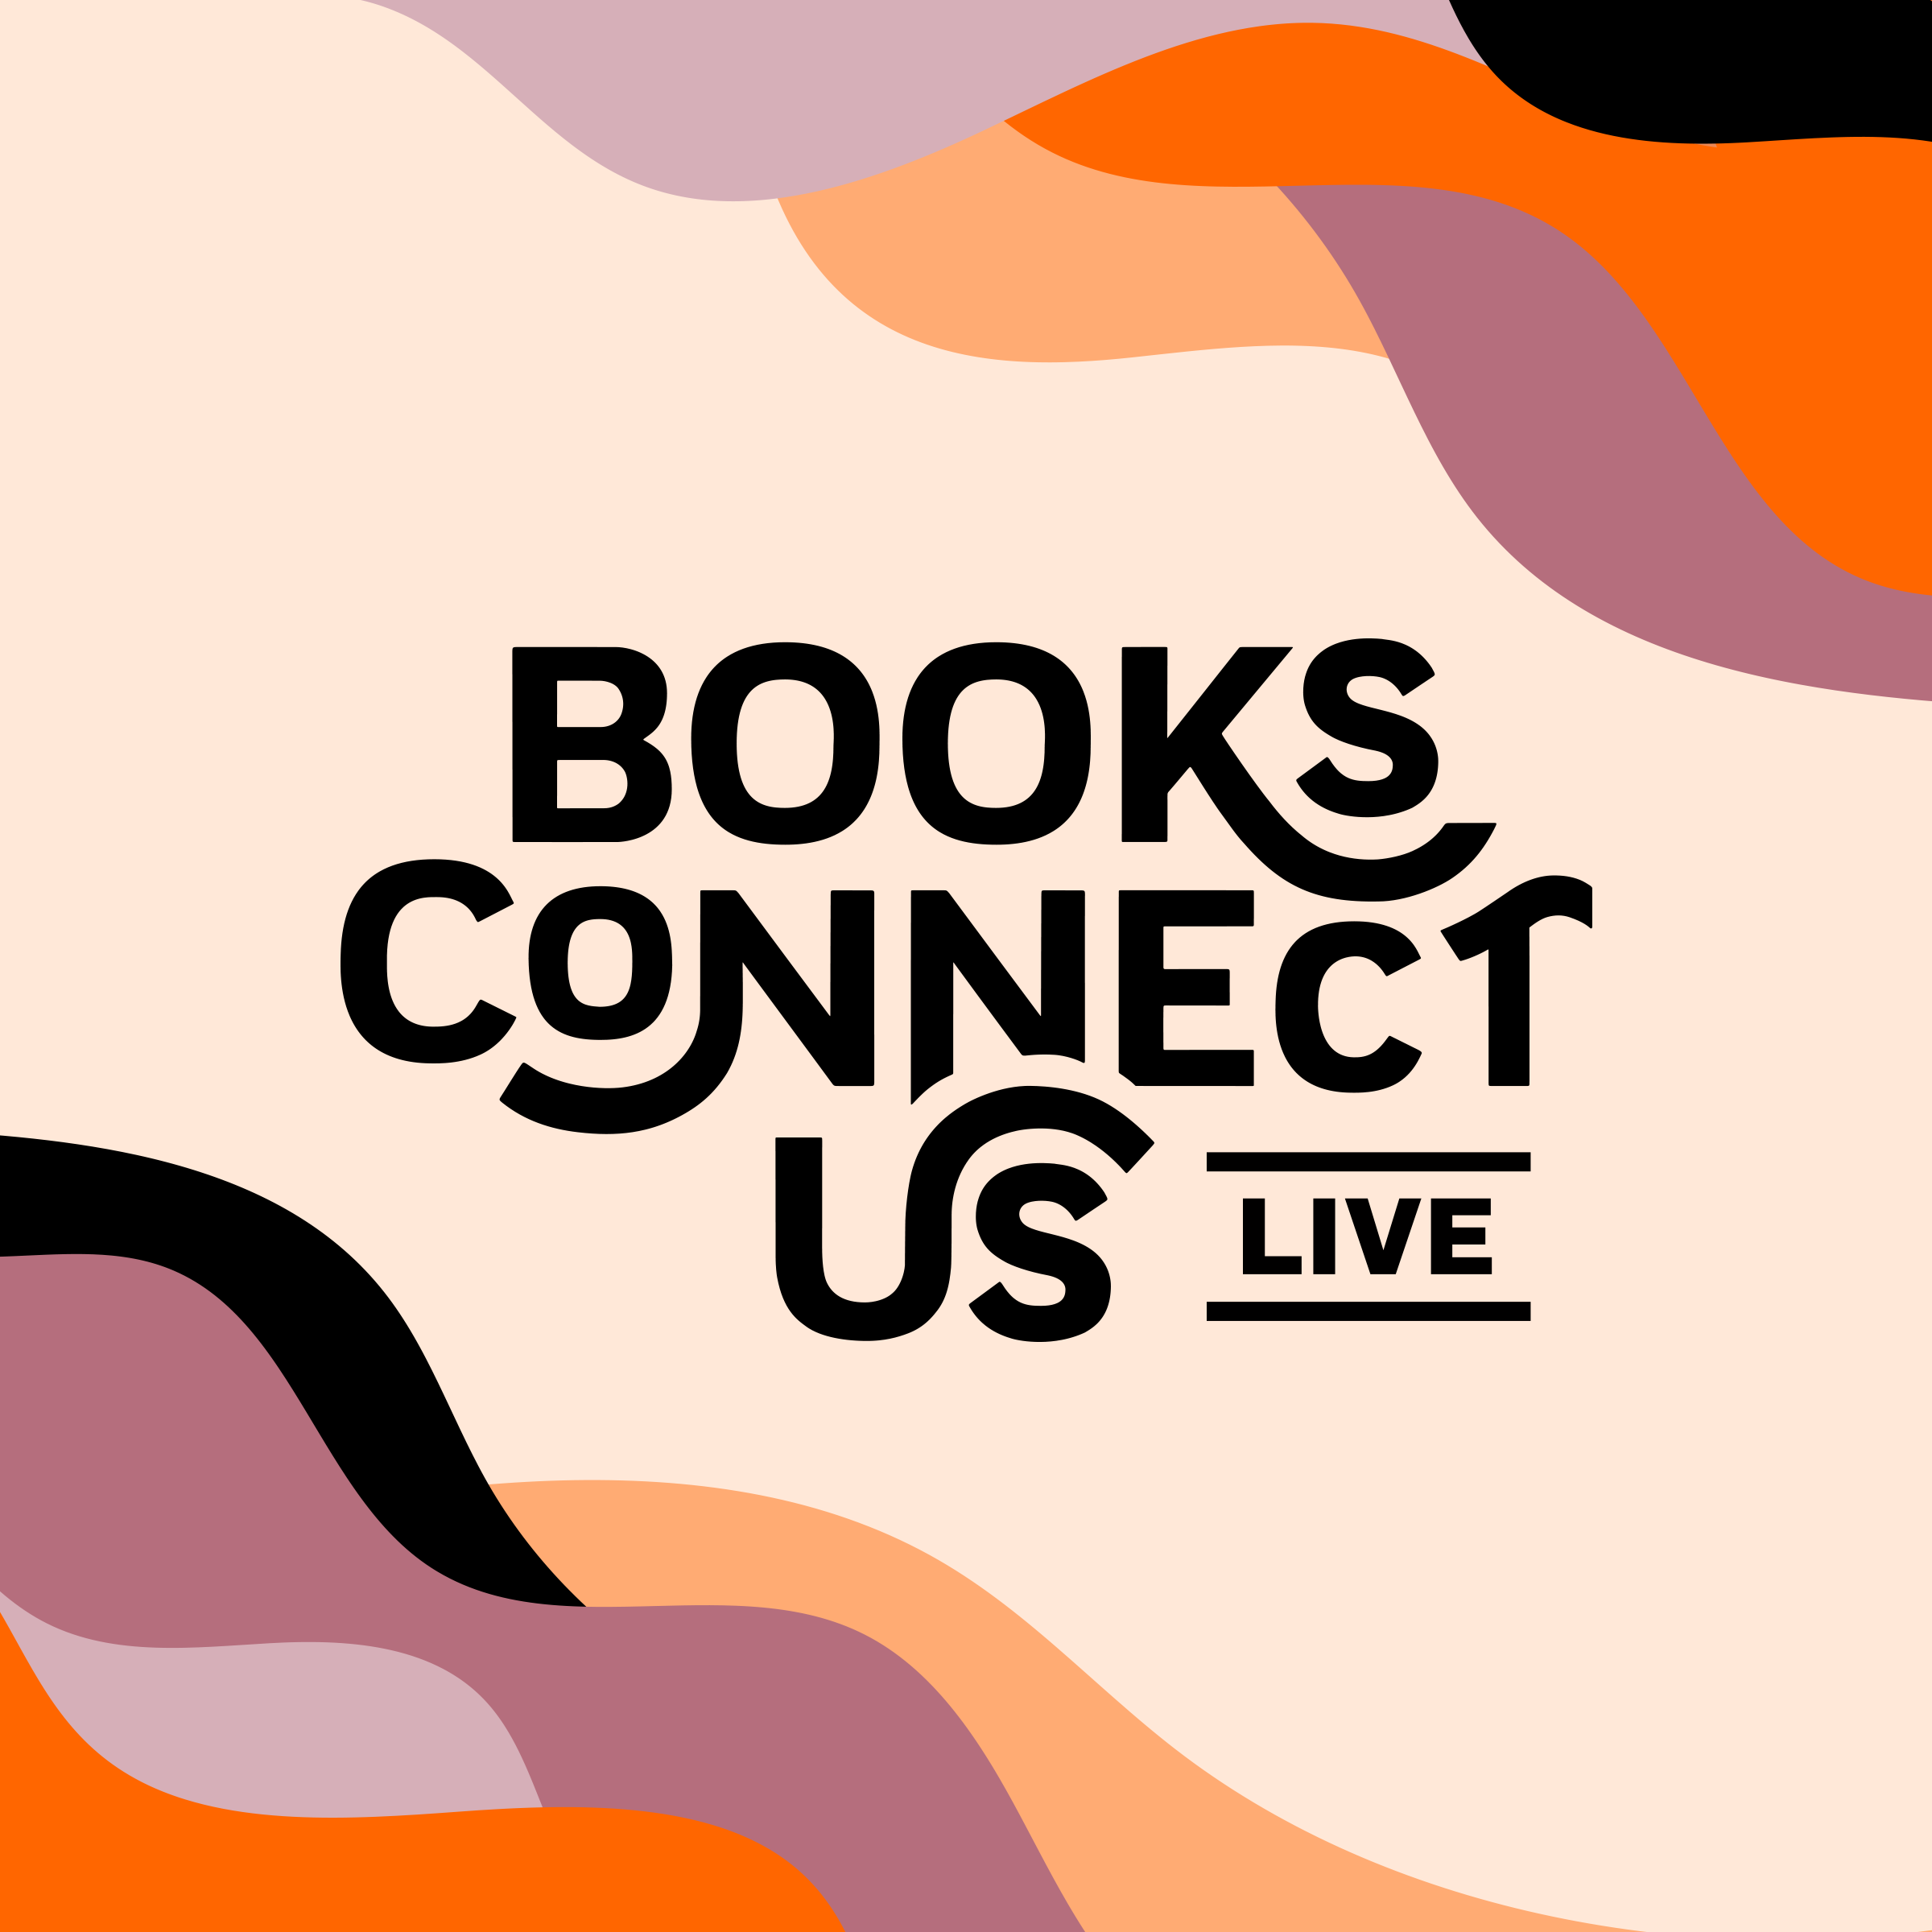 Books Connect Us Live 9/21-10/4